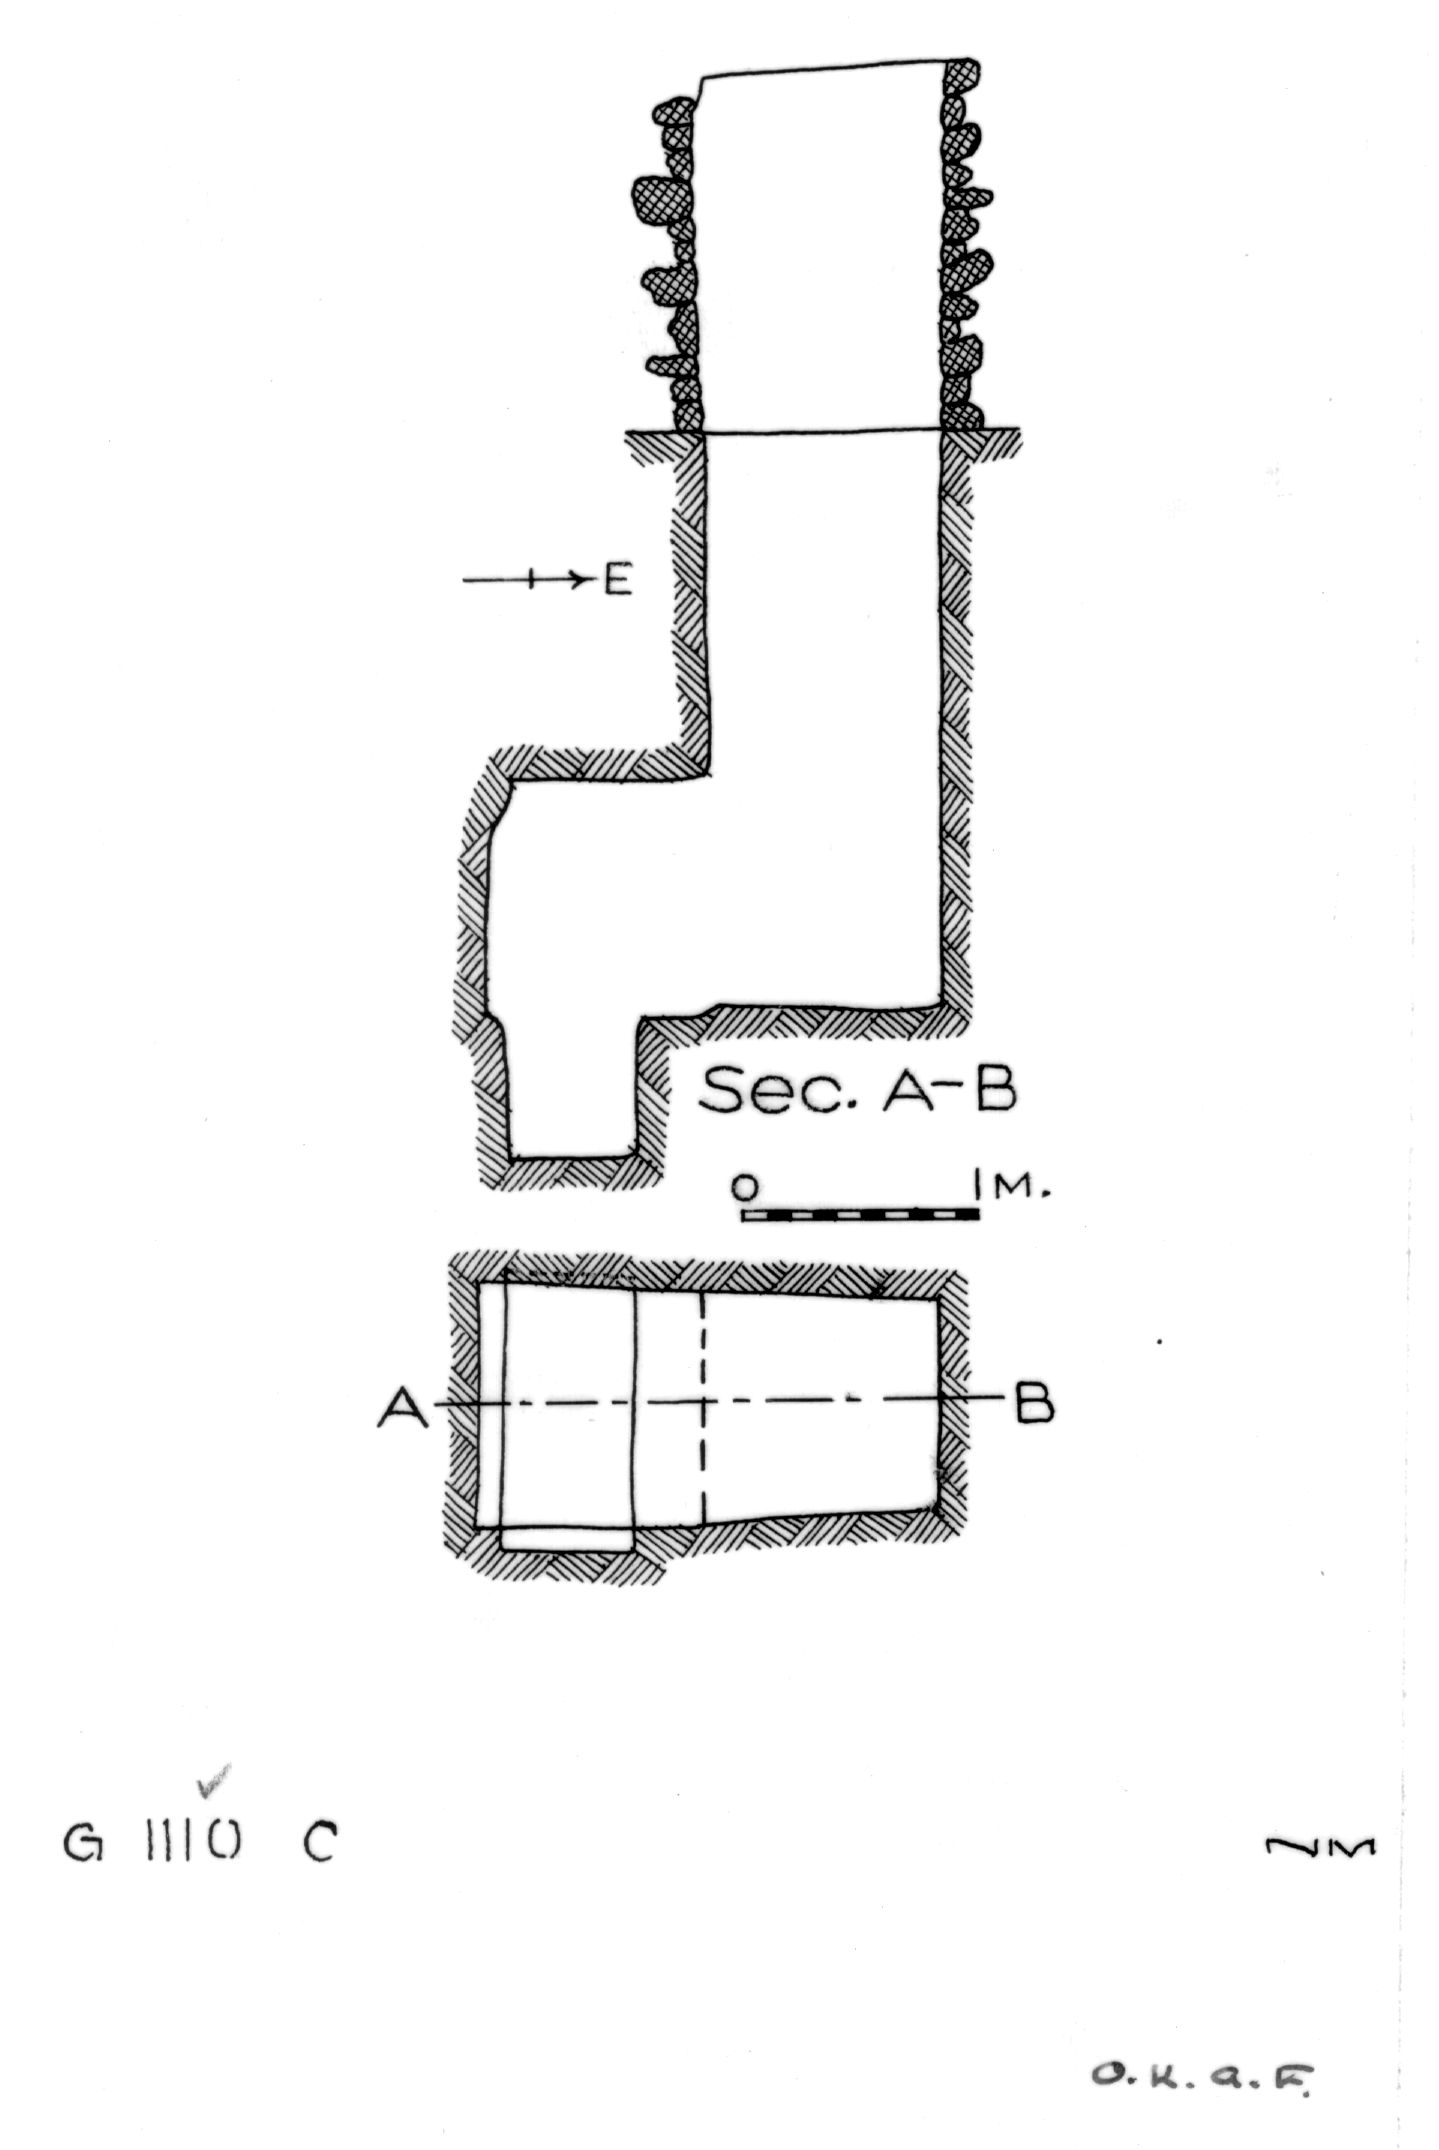 Maps and plans: G 1110, Shaft C